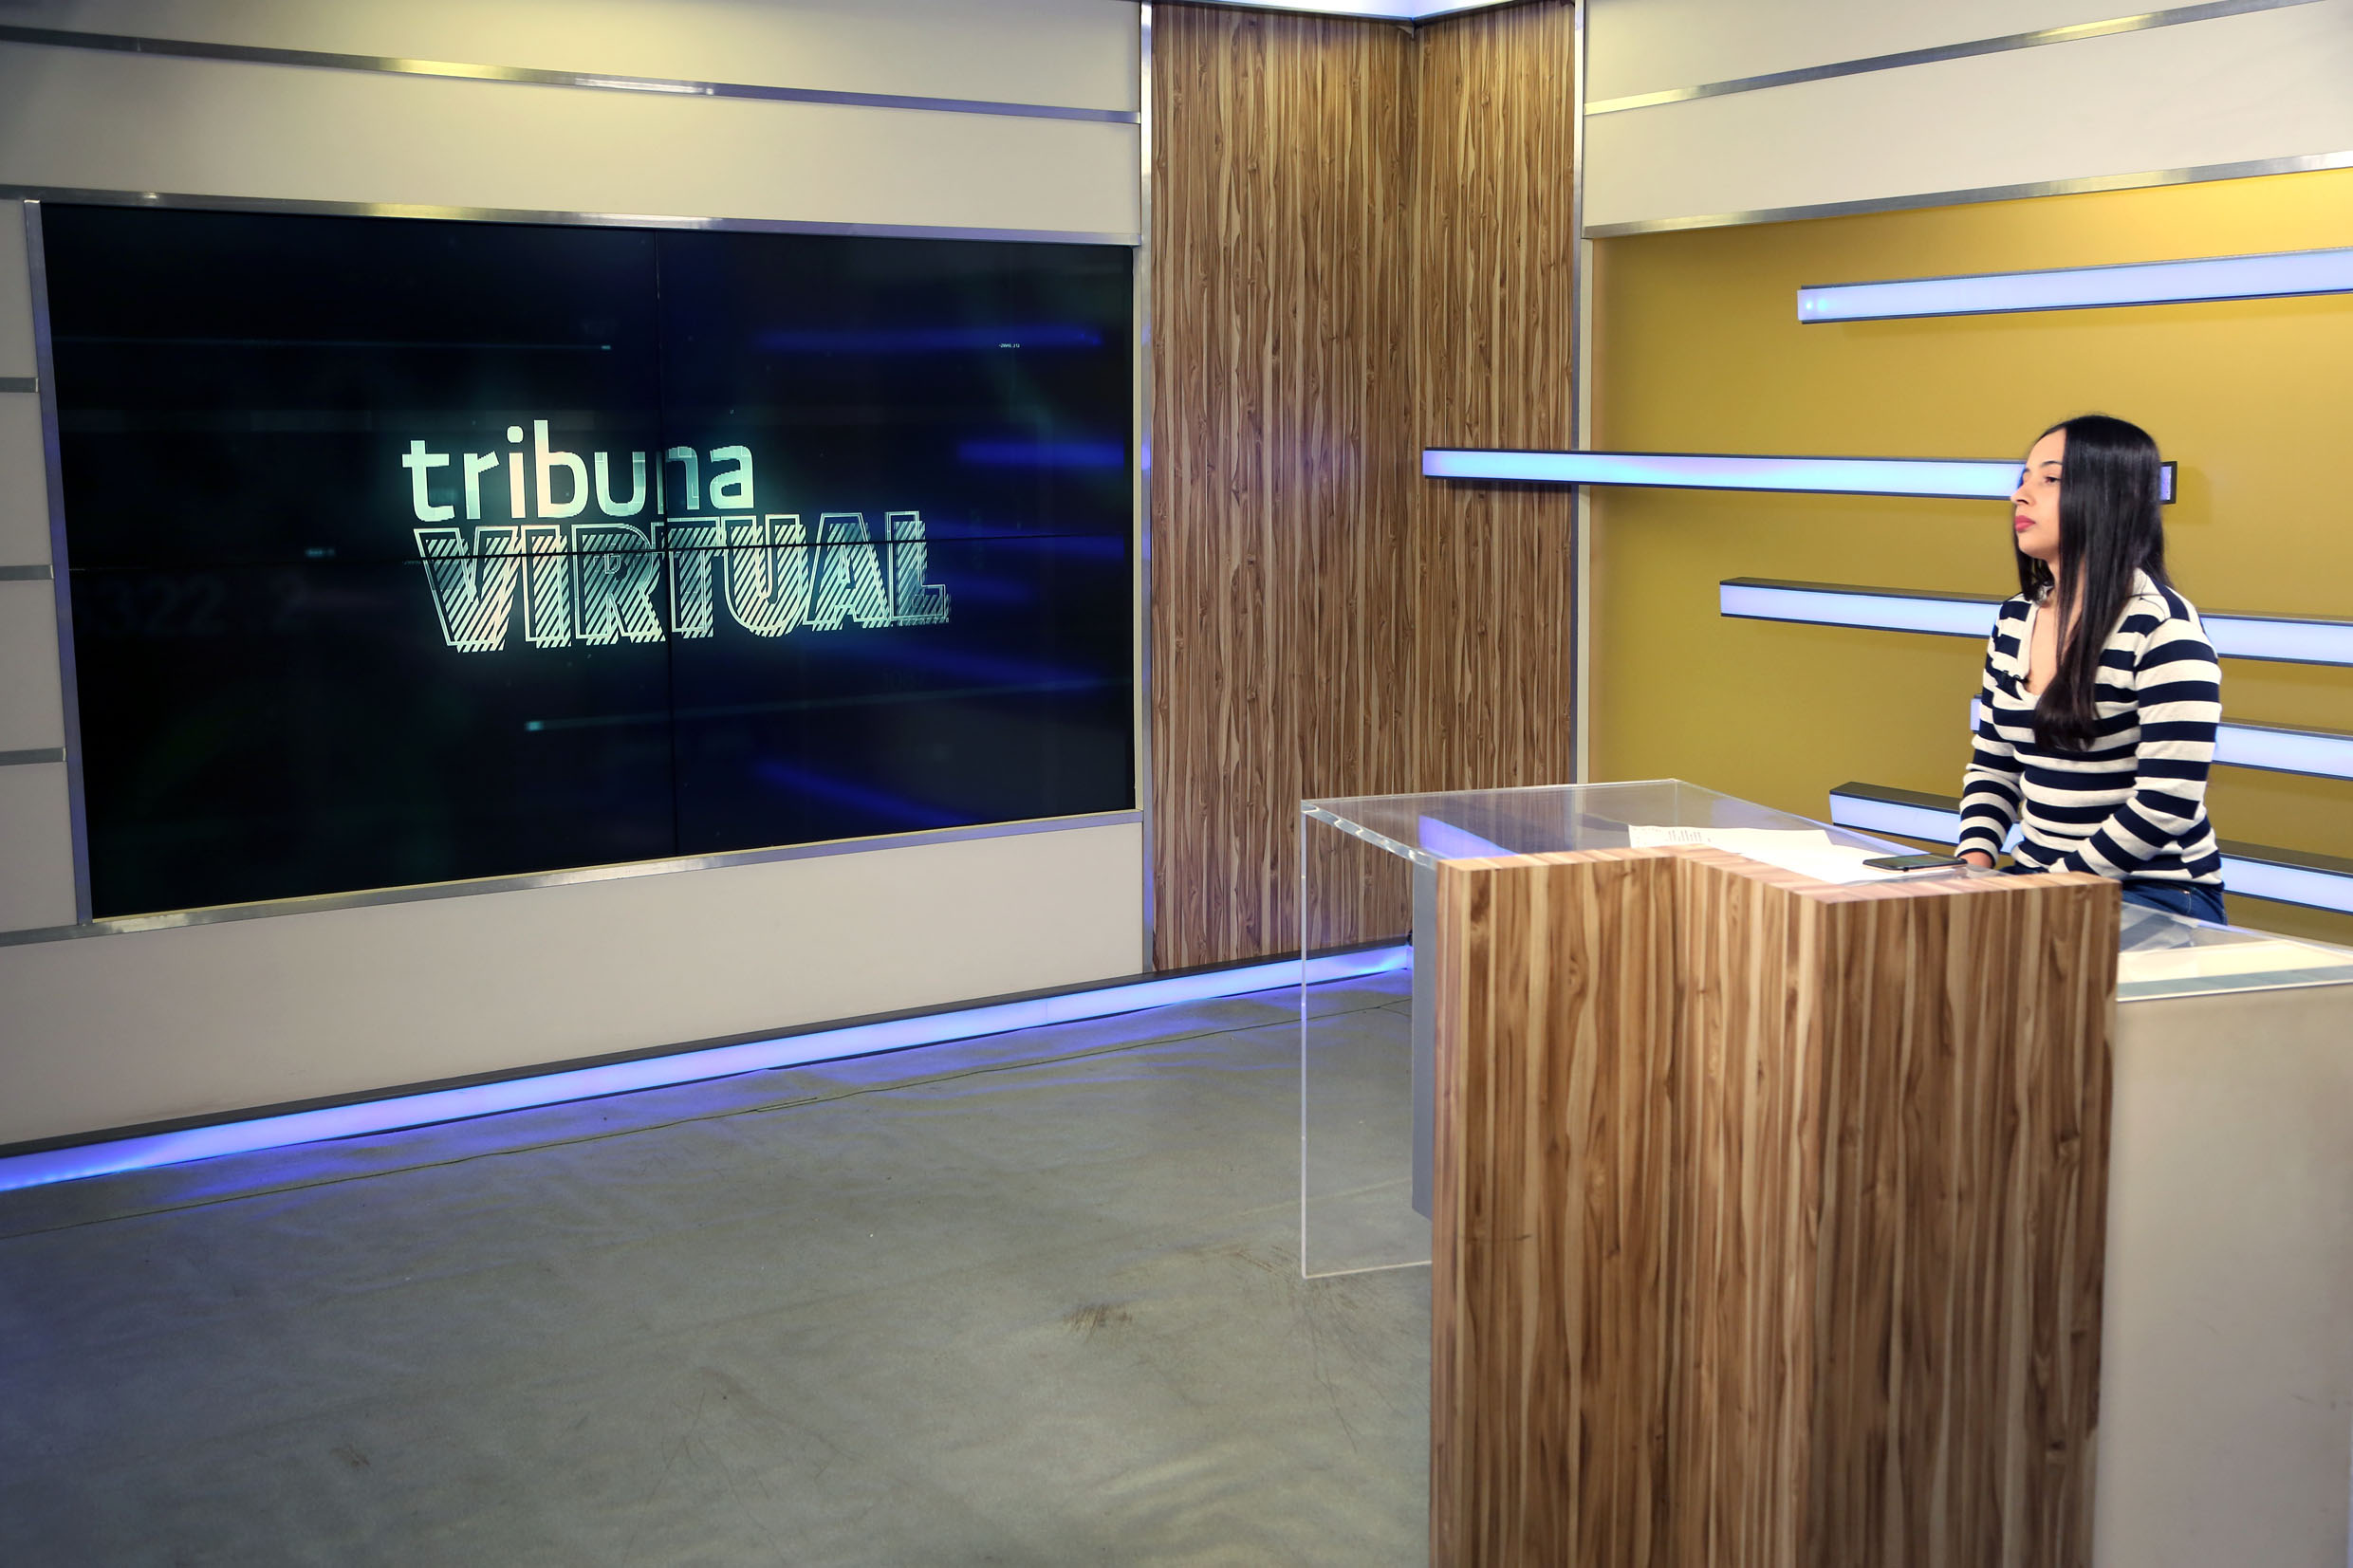 Tribuna Virtual<a style='float:right' href='https://www3.al.sp.gov.br/repositorio/noticia/N-07-2020/fg251880.jpg' target=_blank><img src='/_img/material-file-download-white.png' width='14px' alt='Clique para baixar a imagem'></a>